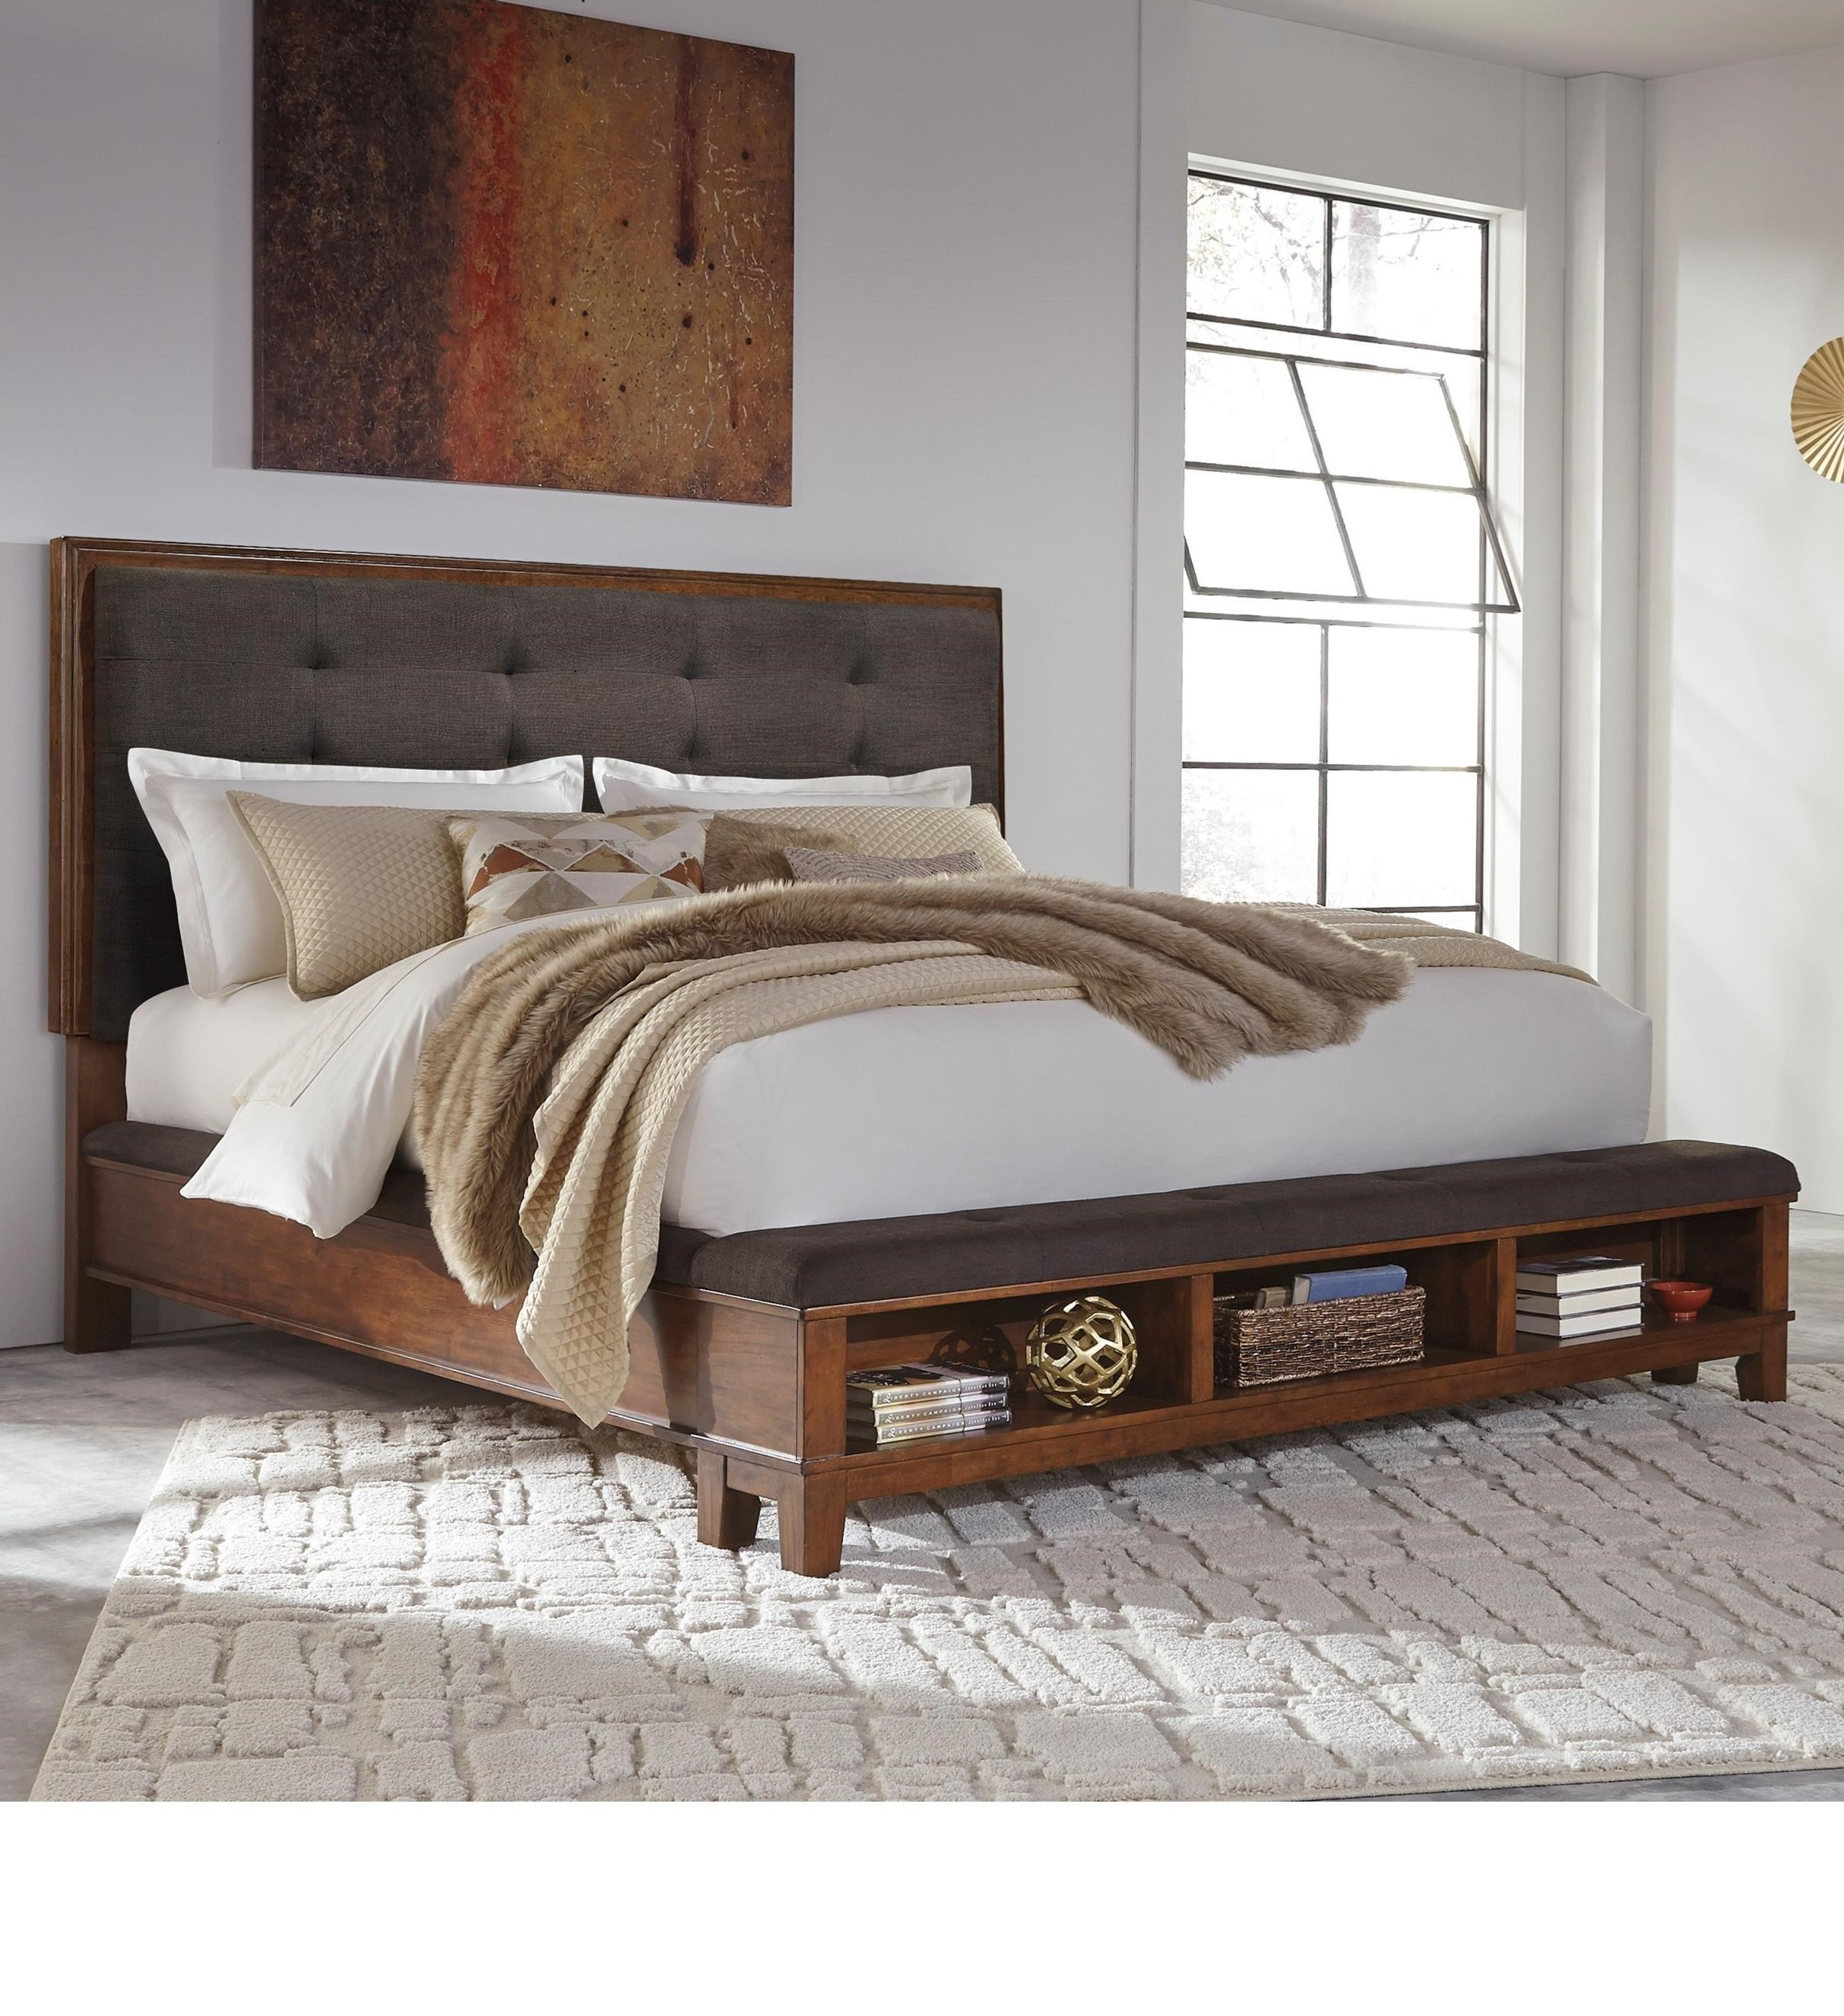 Bedroom Bench King Bed King Upholstered Bed With Bench Storage Footboard By